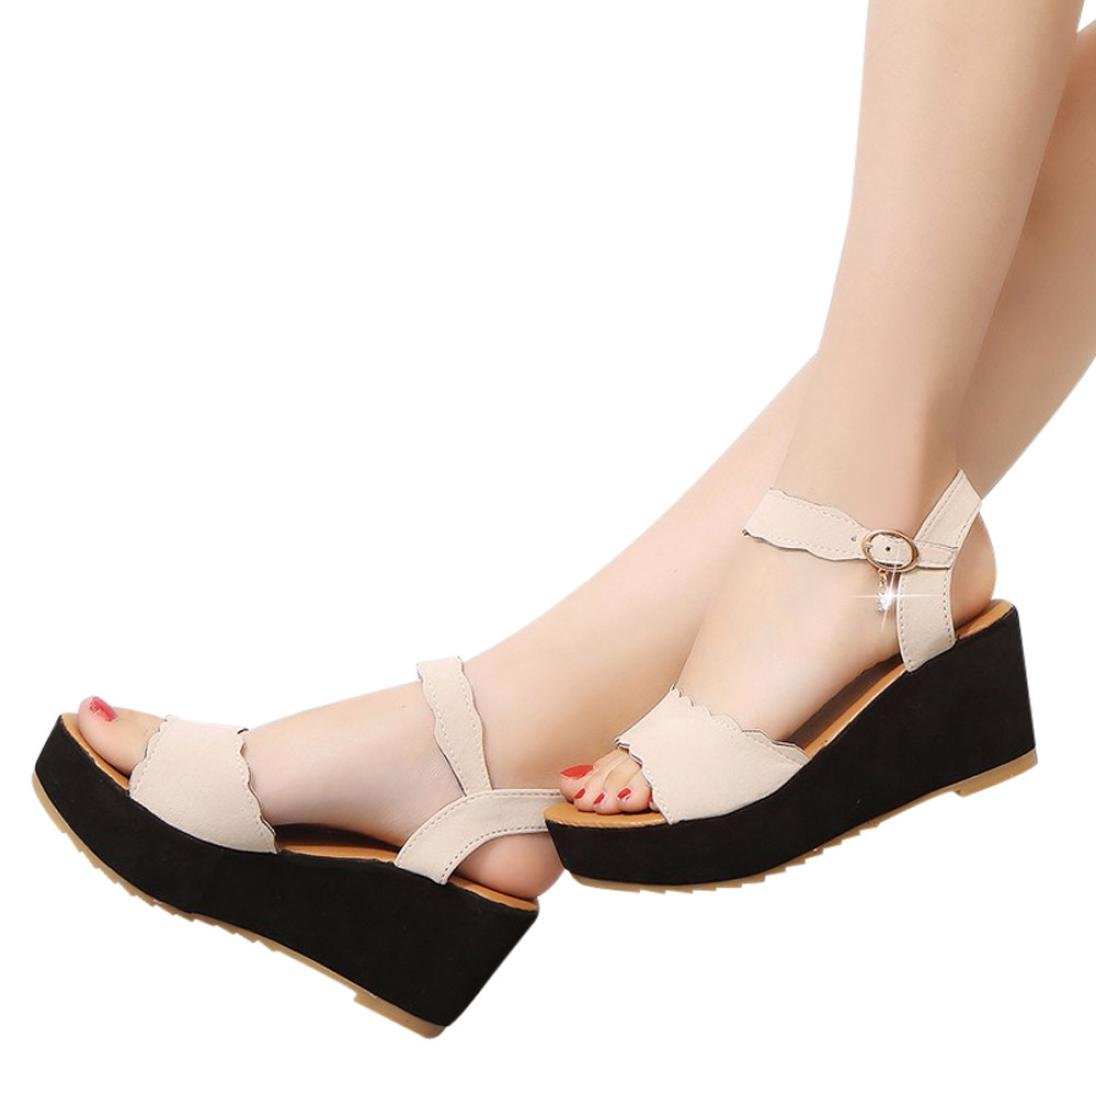 8065d1311f ➽Expedited Shipping:Usually arrived at you in 4-8 days ➽Material:Artificial  leather ➽Sole Material:Rubber➽Shoes Heel High: 7 cm ---------➽Closure ...